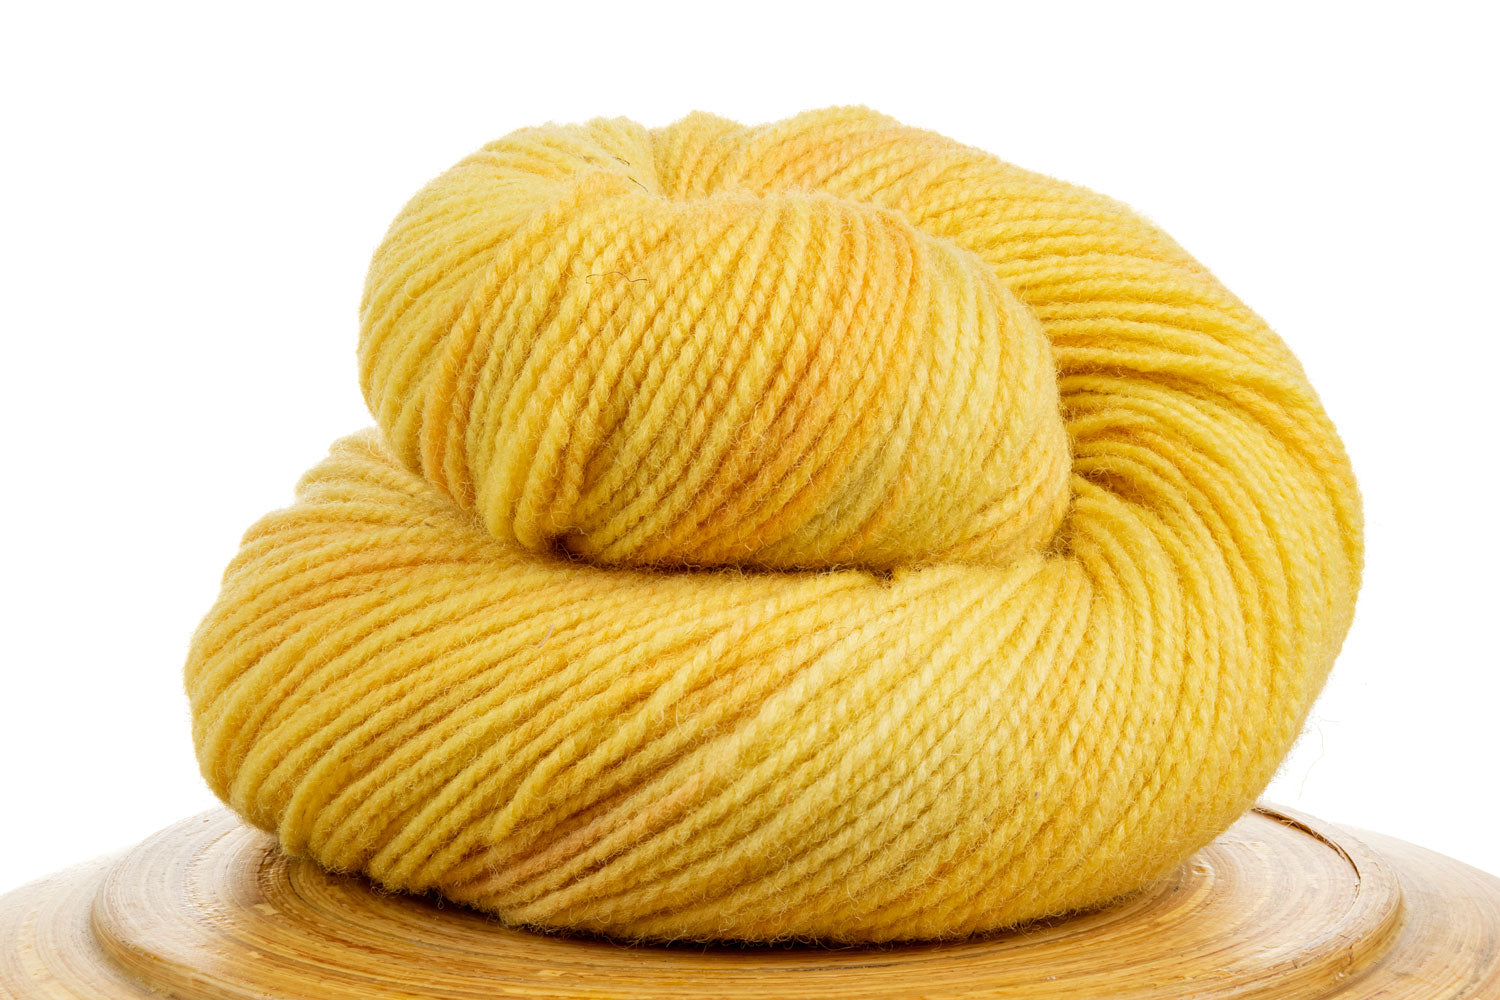 Winfield Canadian hand-dyed yarn in Lemonade, a bright sunny yellow